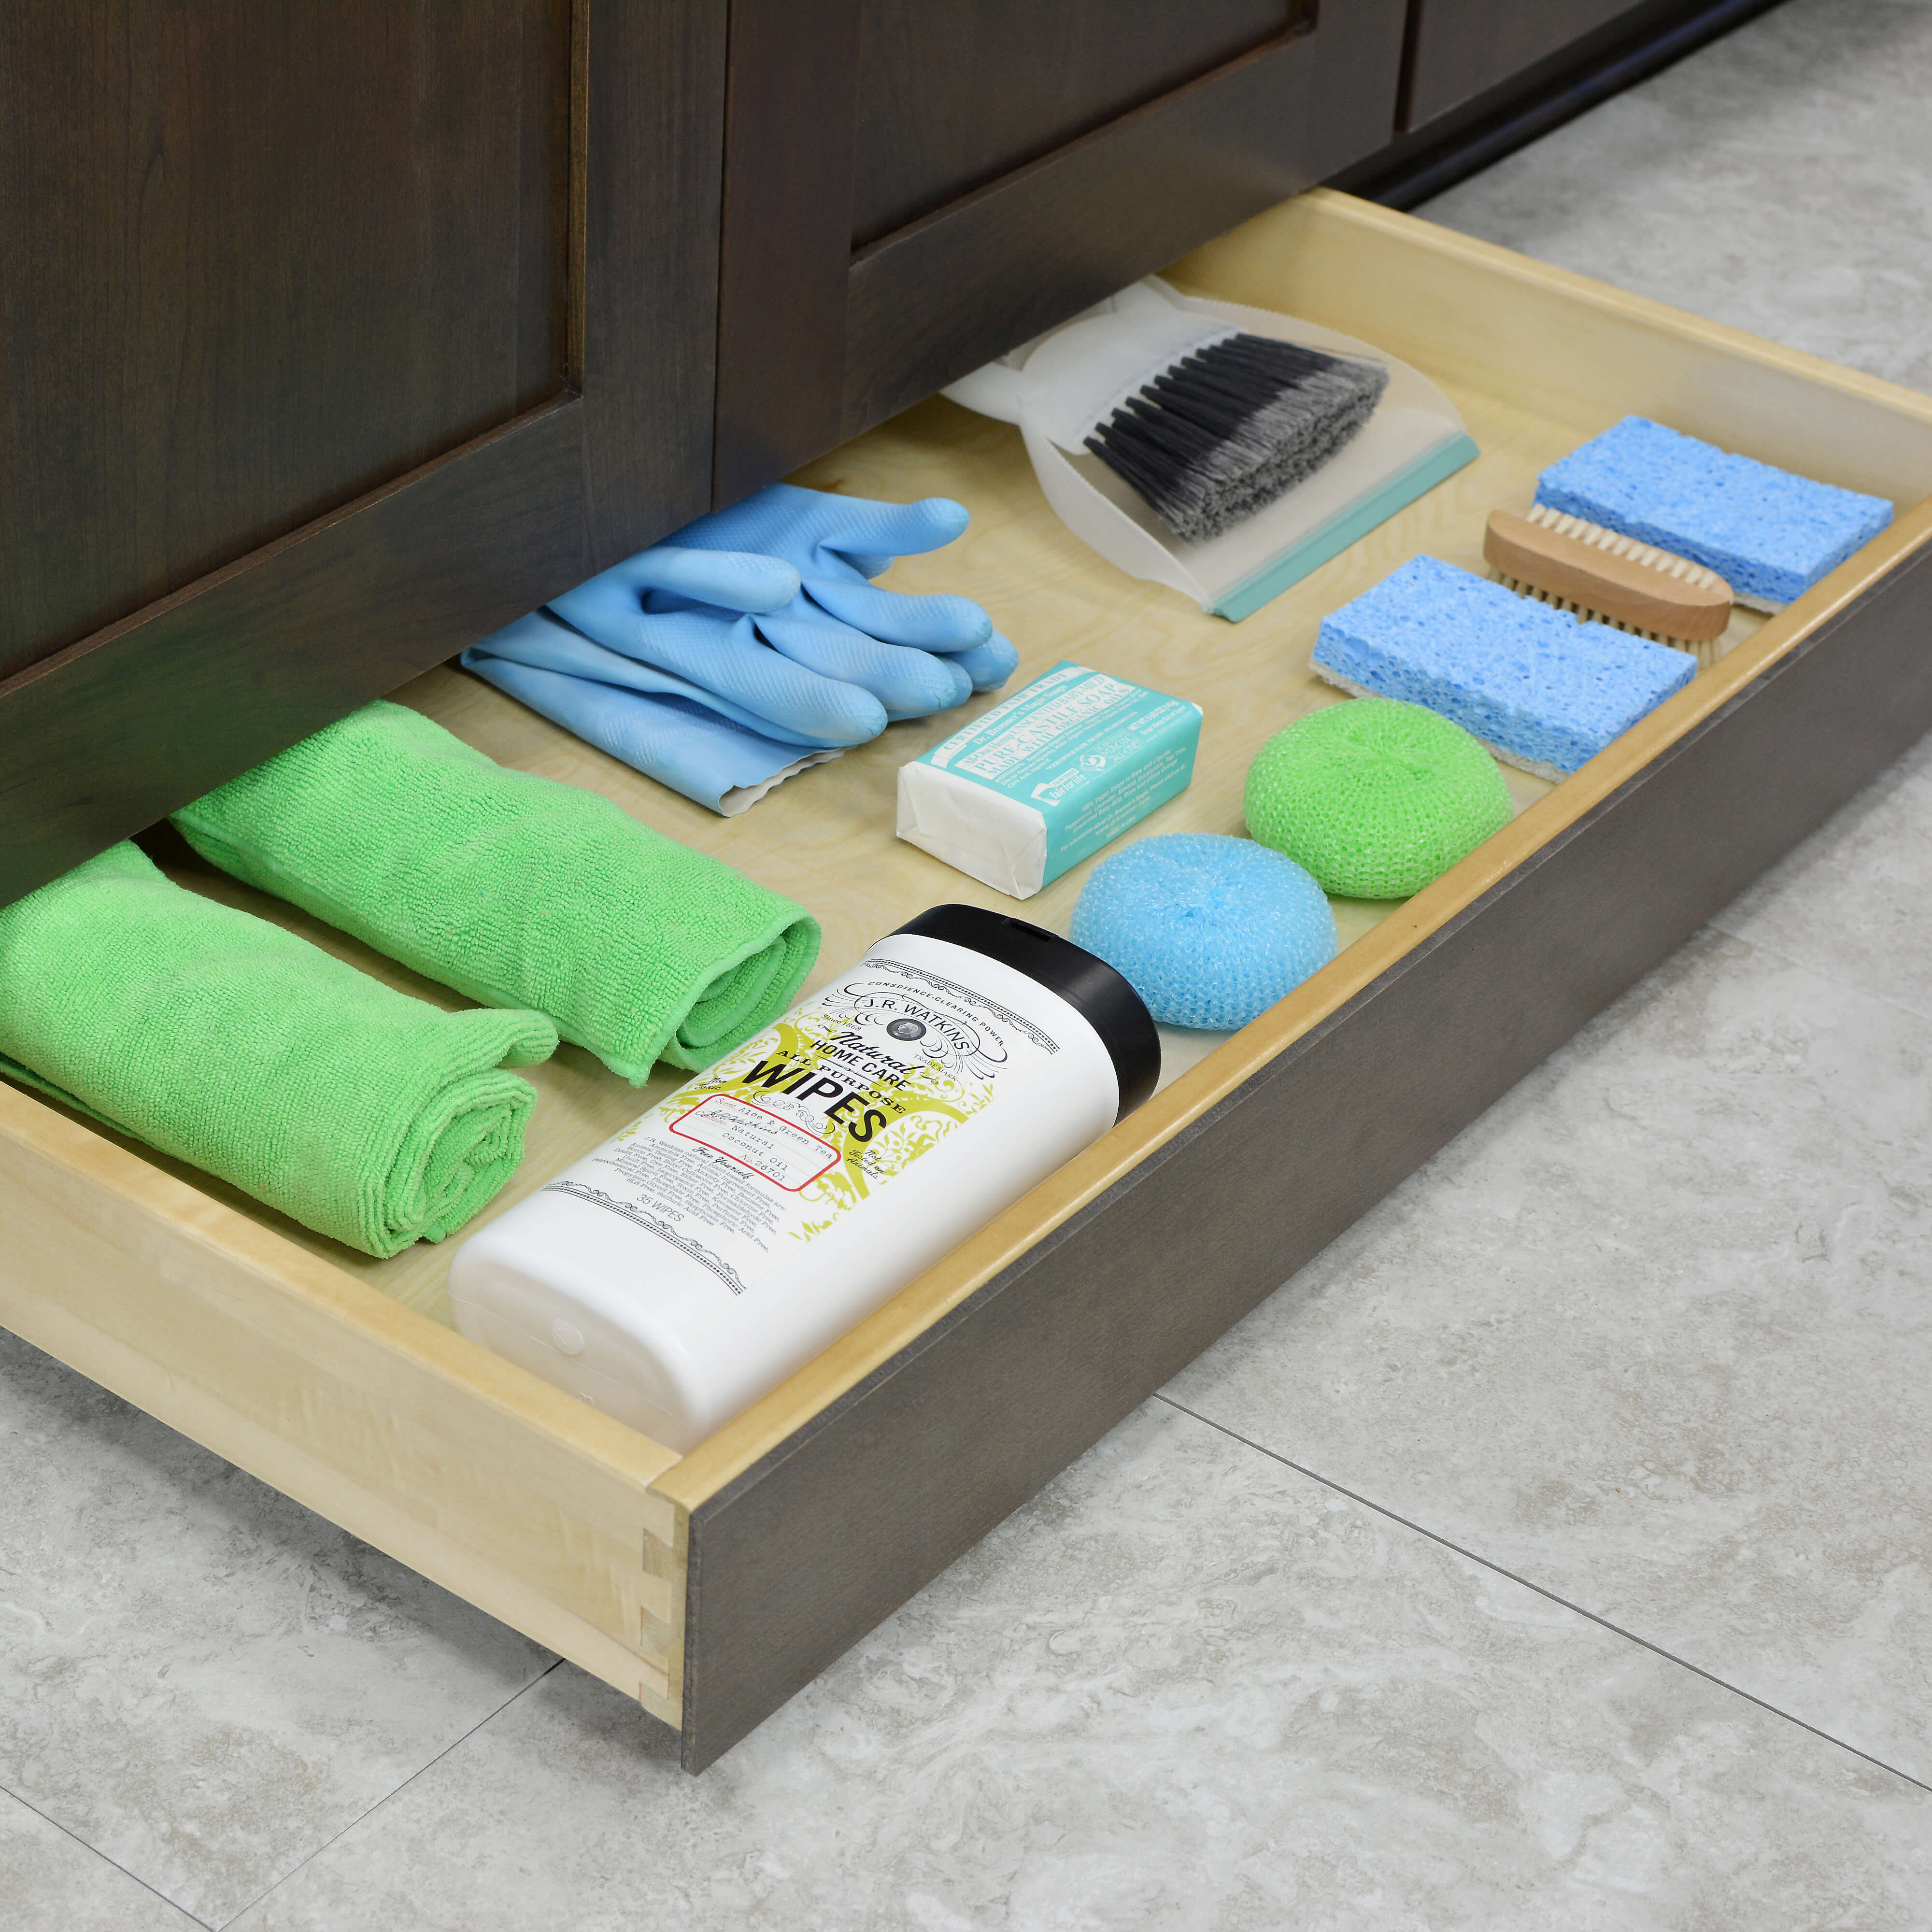 A toe kick drawer near an area that requires frequent cleaning, link at a kitchen island or near a kitchen sink can provide a space to store cleaning supplies close at hand.